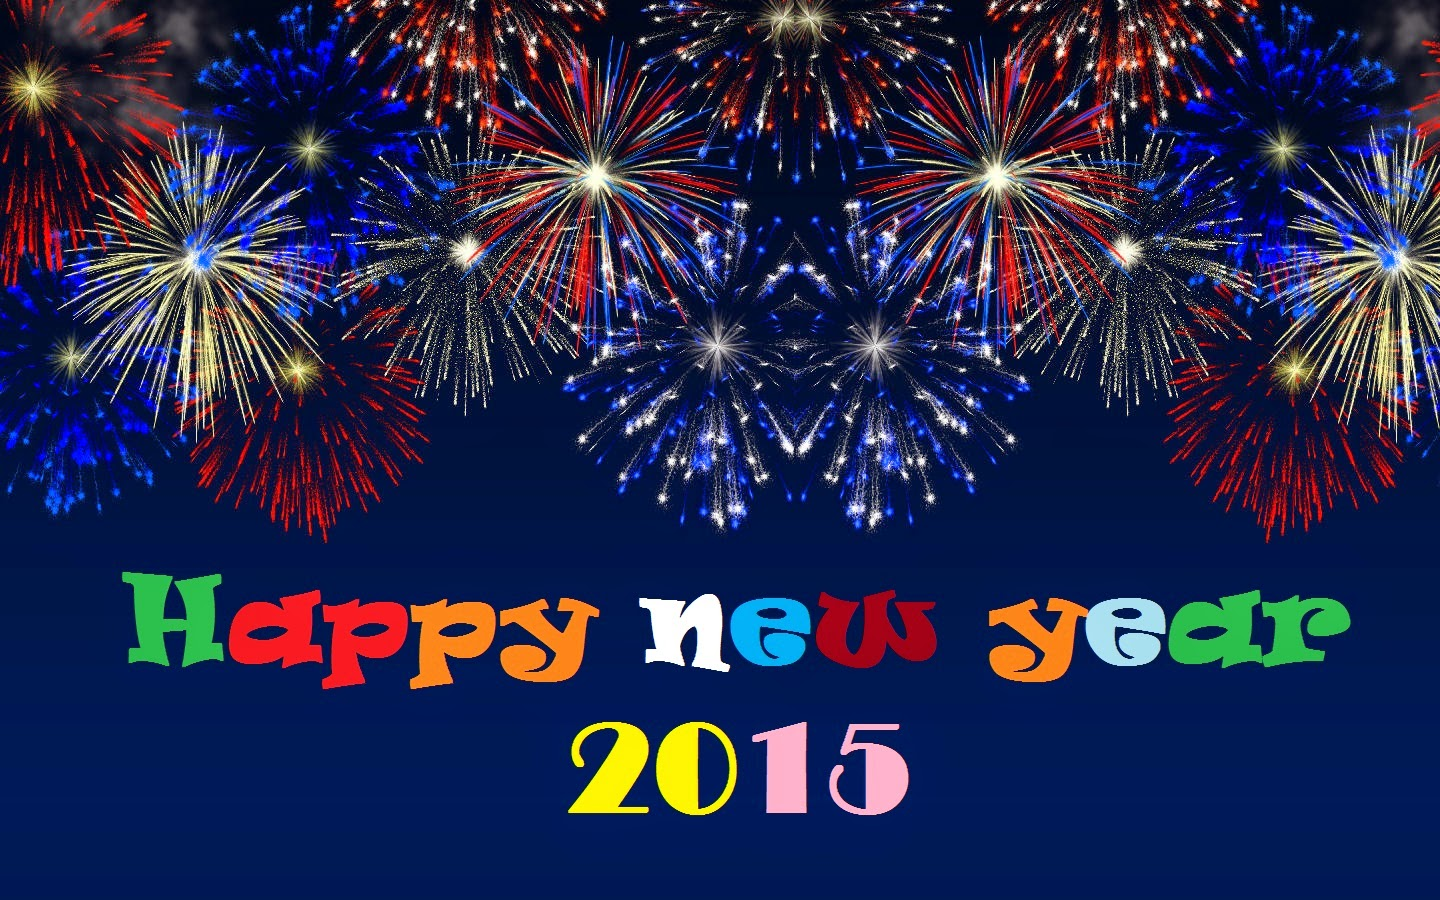 Top 10 hd happy new year 2015 wallpapers axeetech for Wallpaper ideas 2016